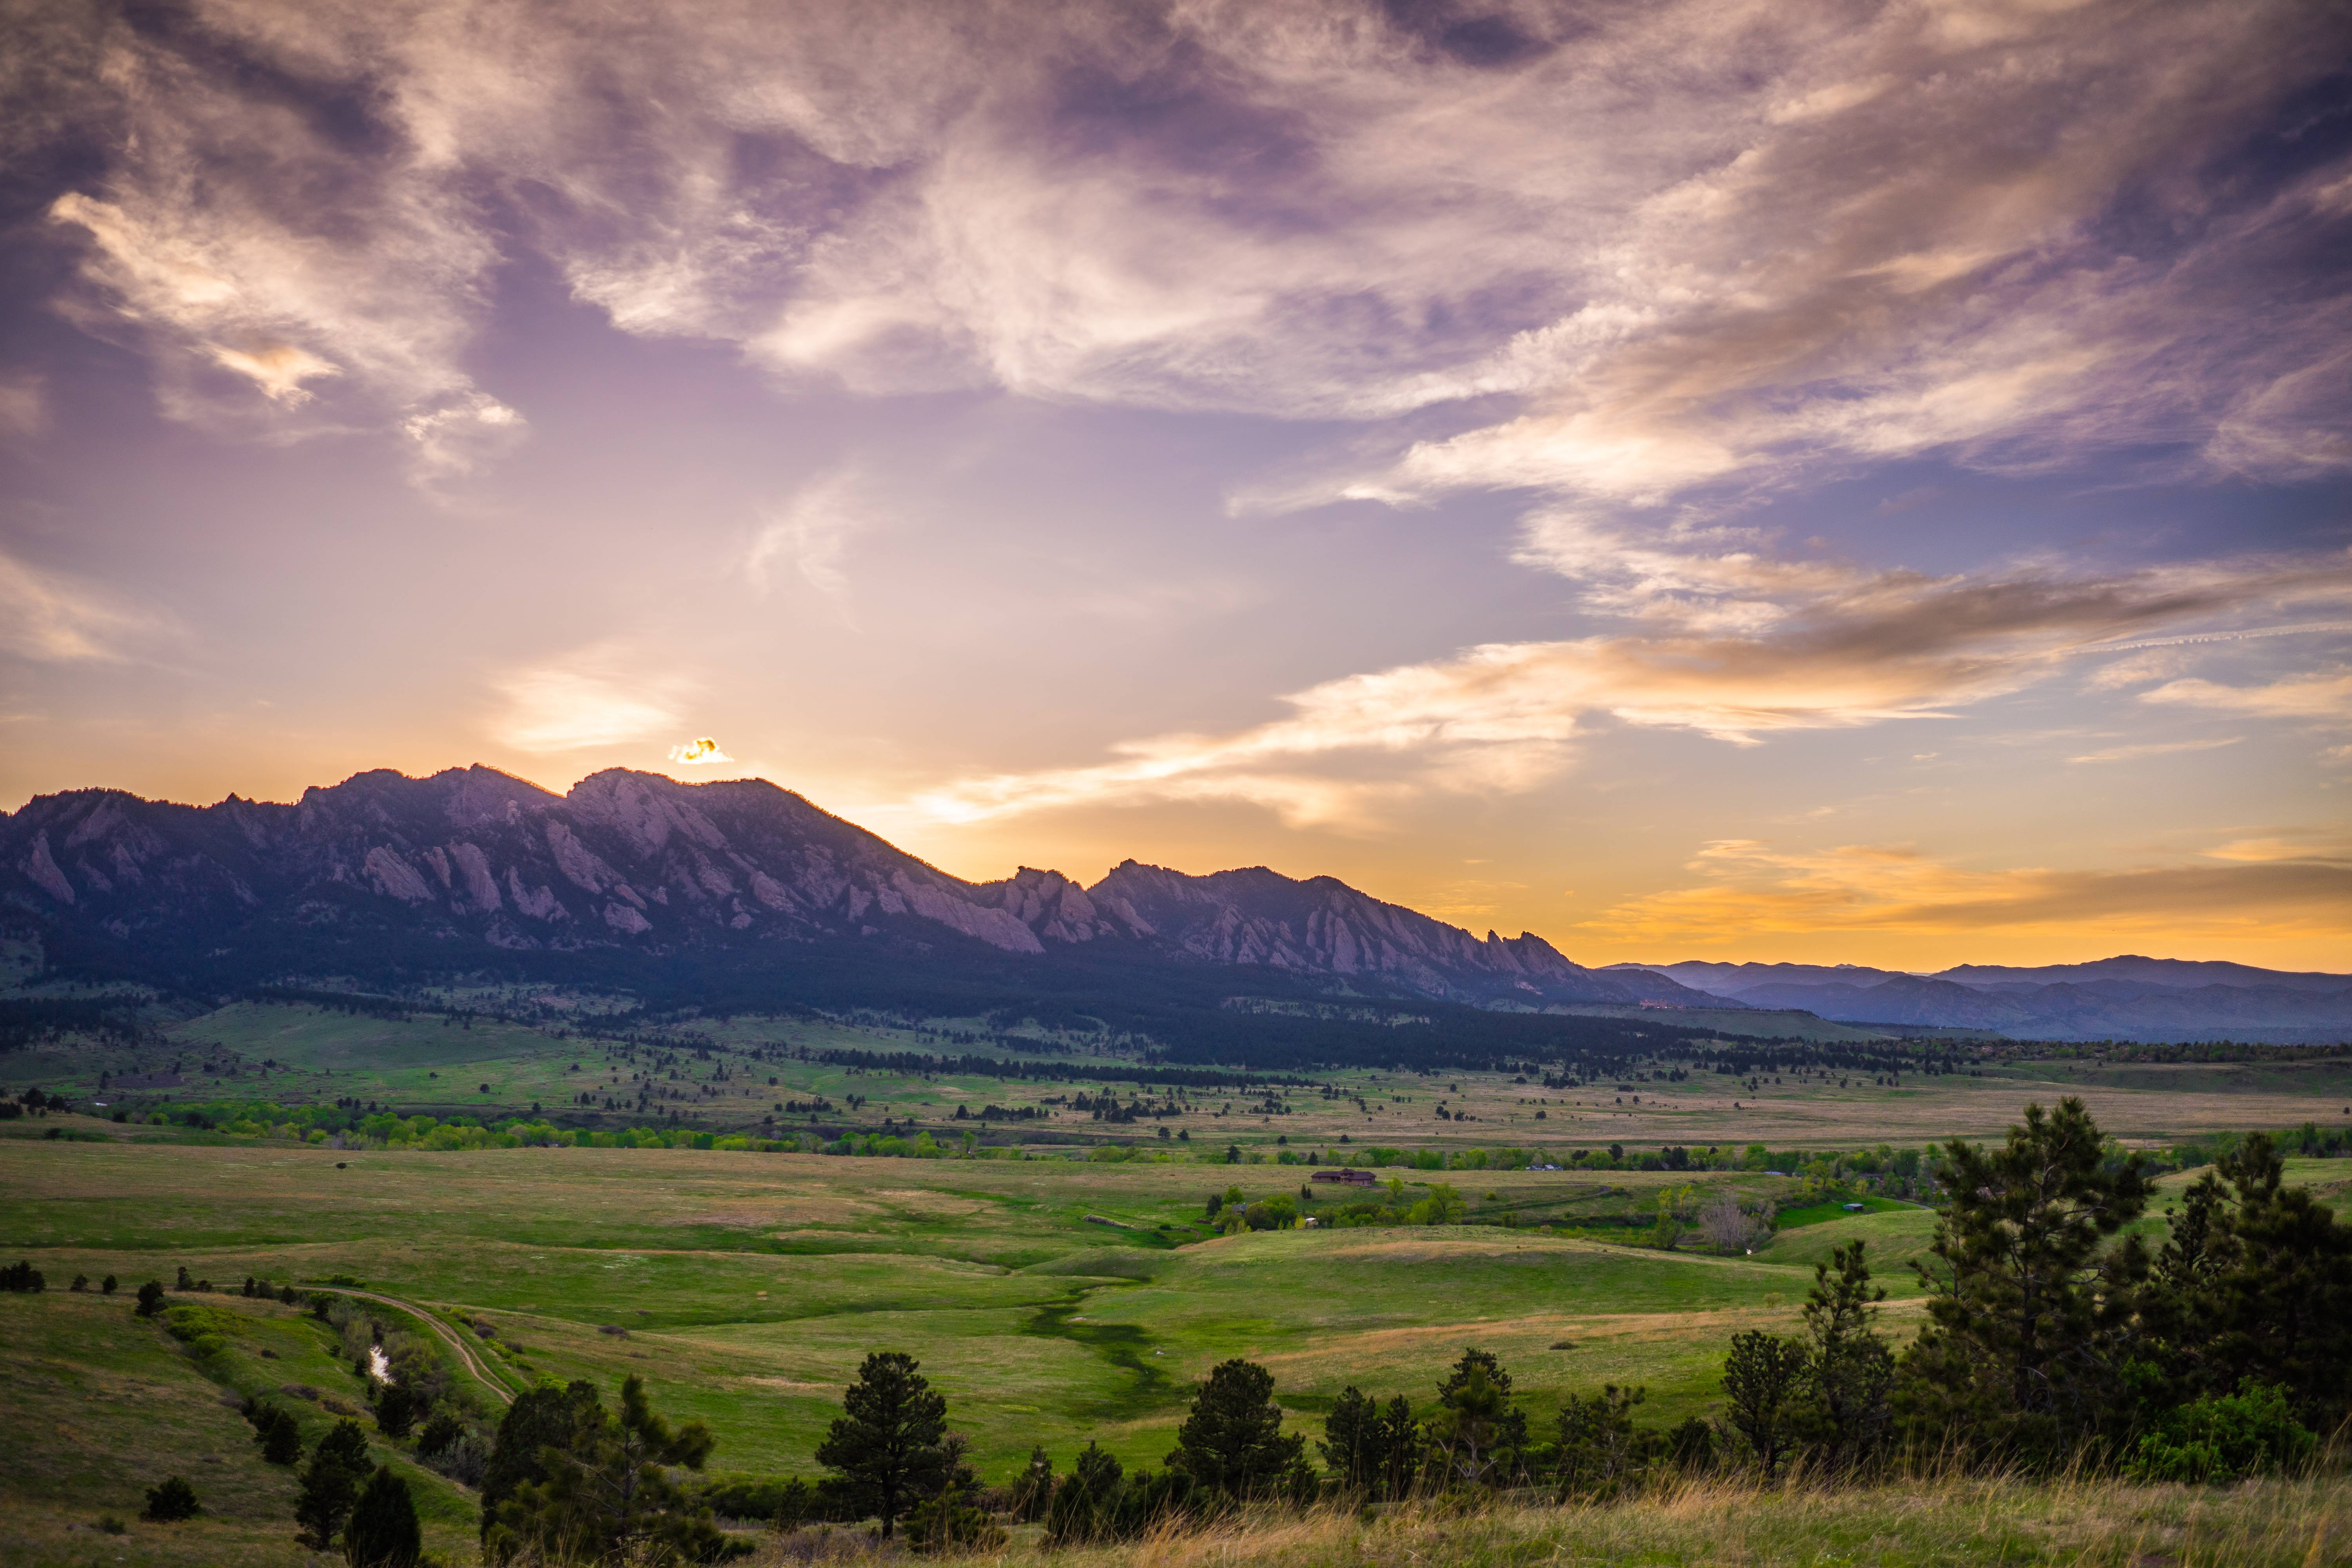 boulder colorado wallpaper - photo #25